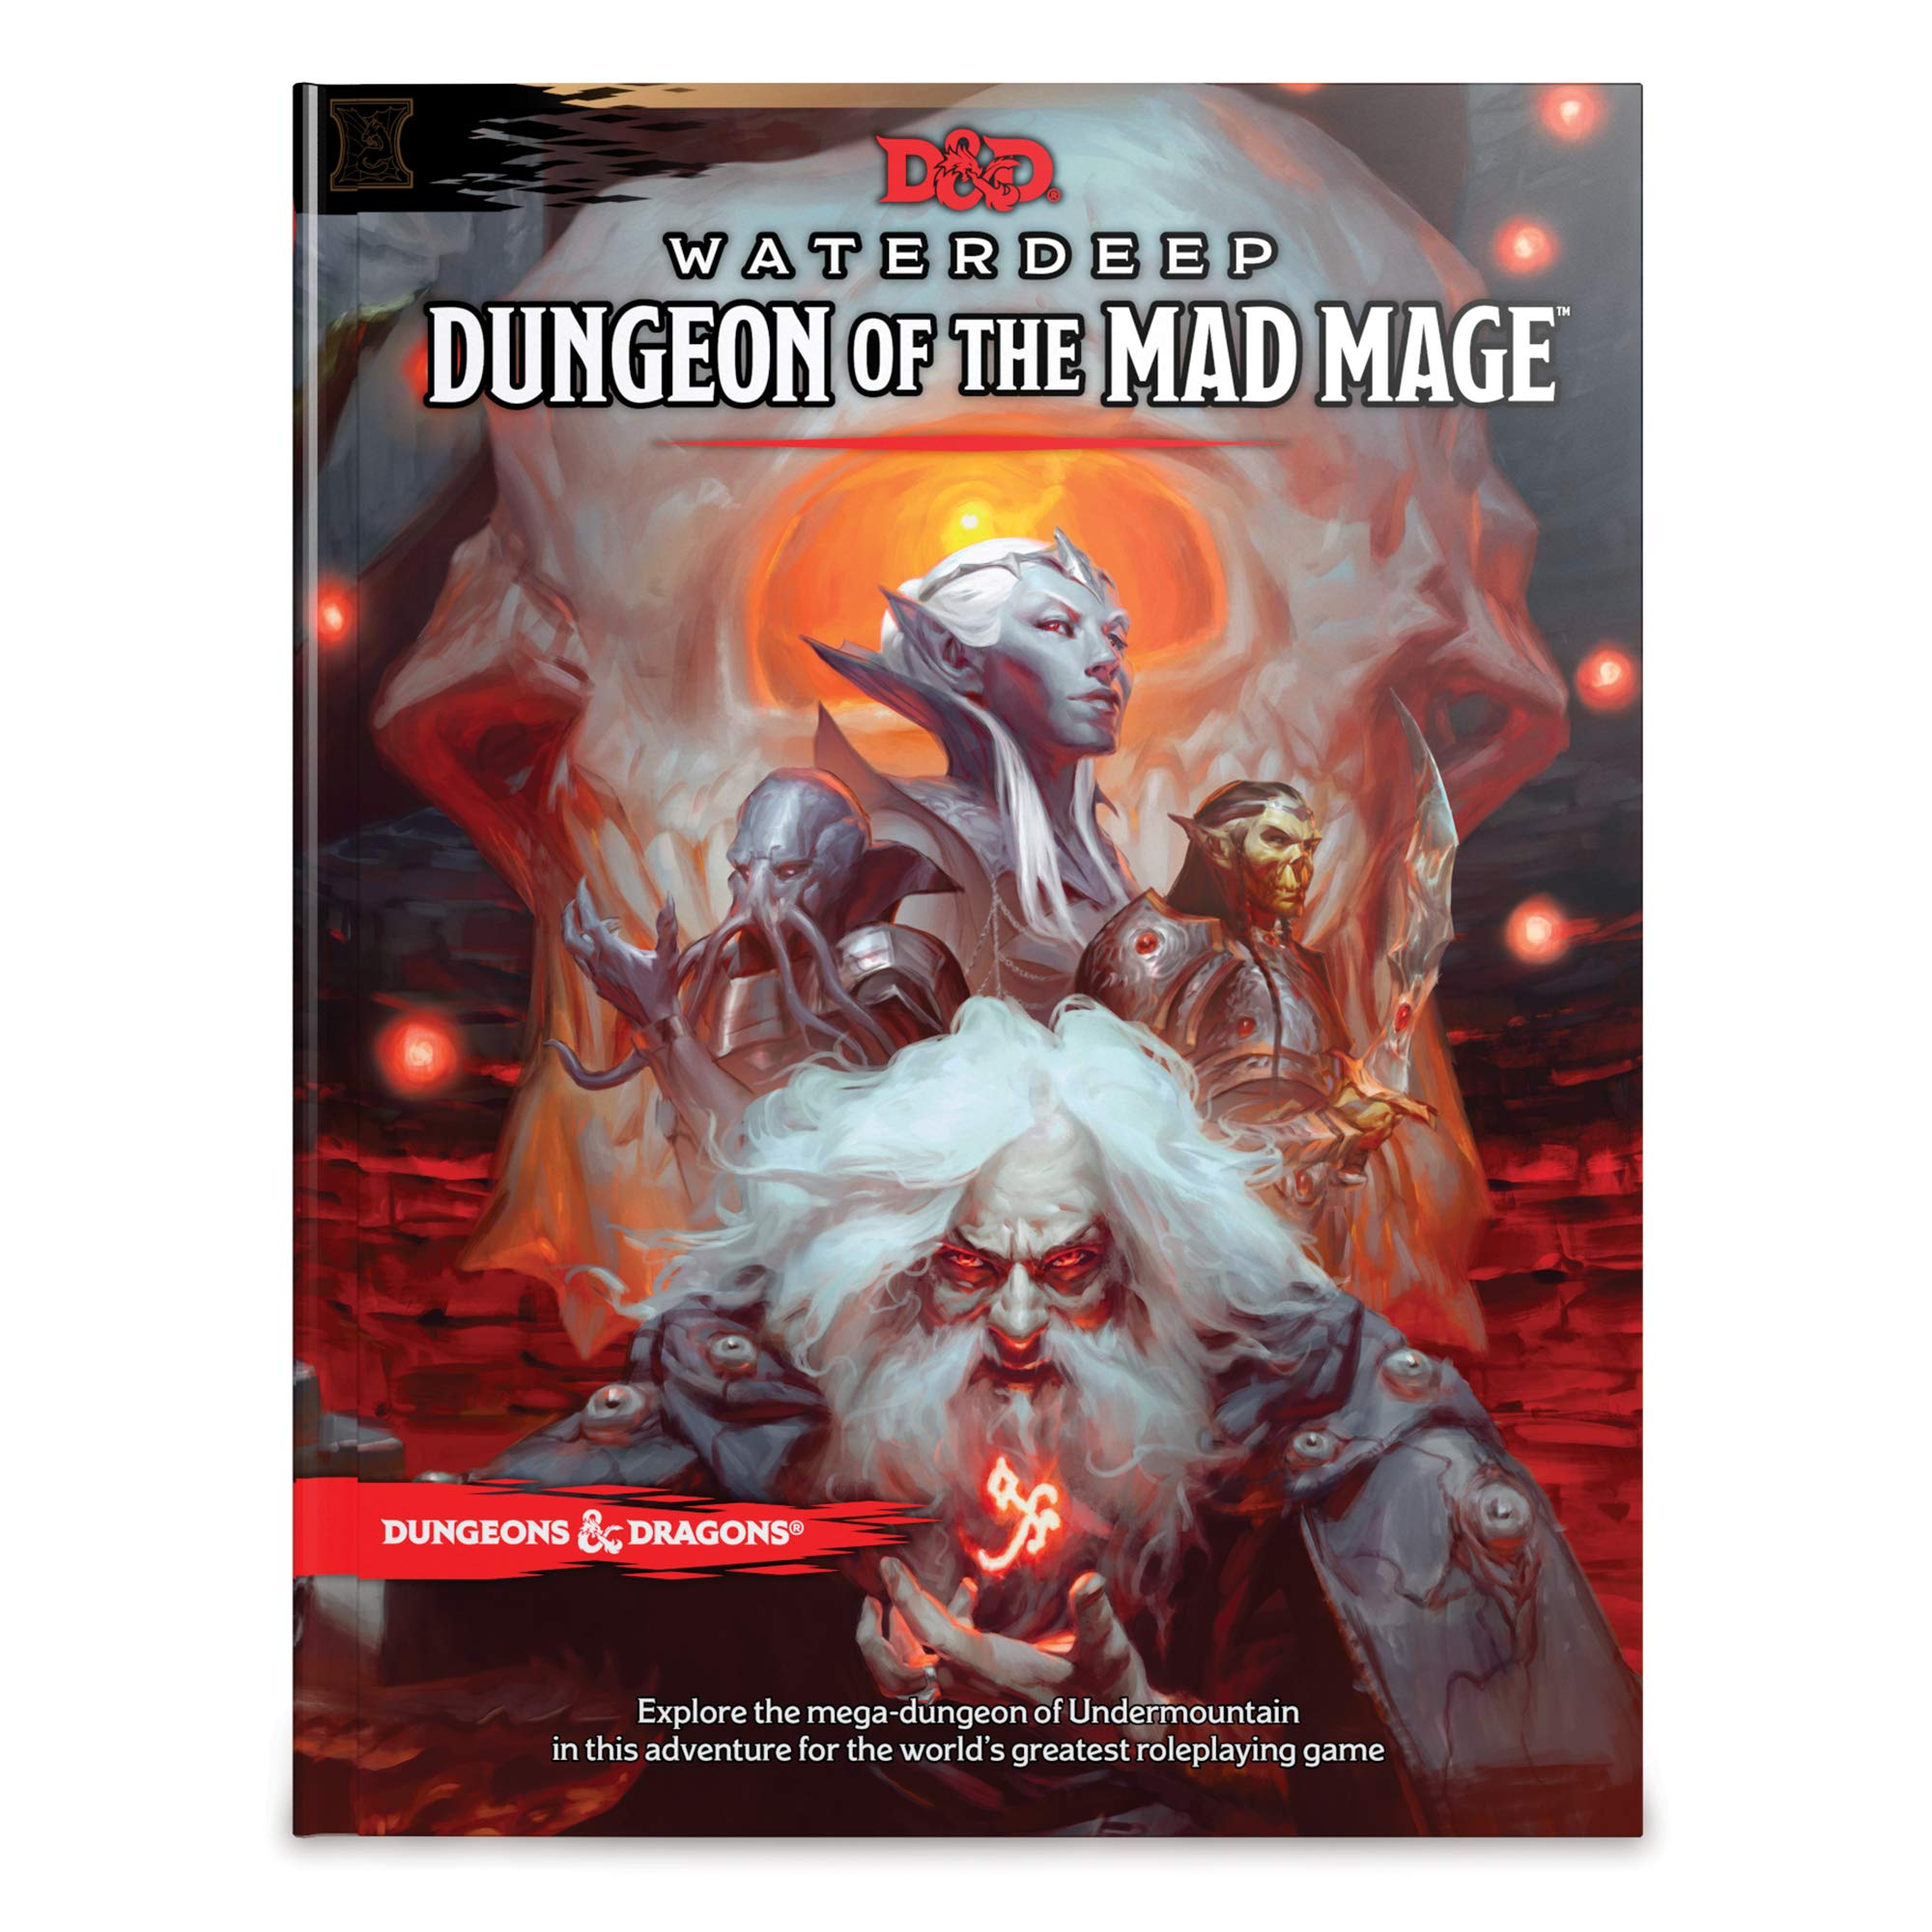 Dungeons & Dragons Waterdeep: Dungeon of the Mad Mage (Adventure Book, D&D Roleplaying Game) by Wizards of the Coast